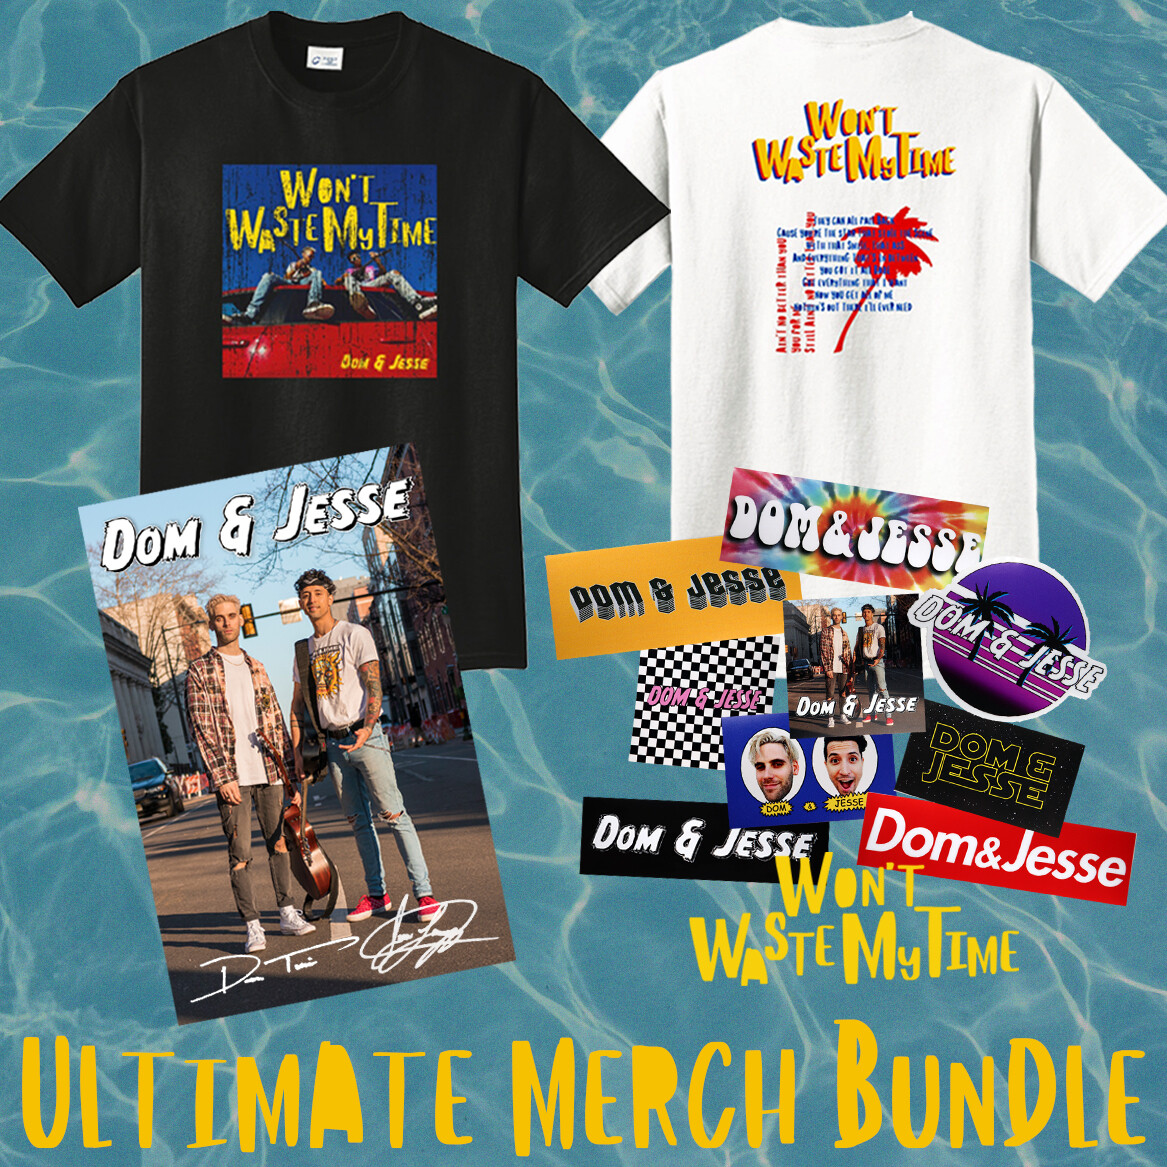 Ultimate Merch Bundle - 2 Tees + 1 Signed Poster + 10 Stickers